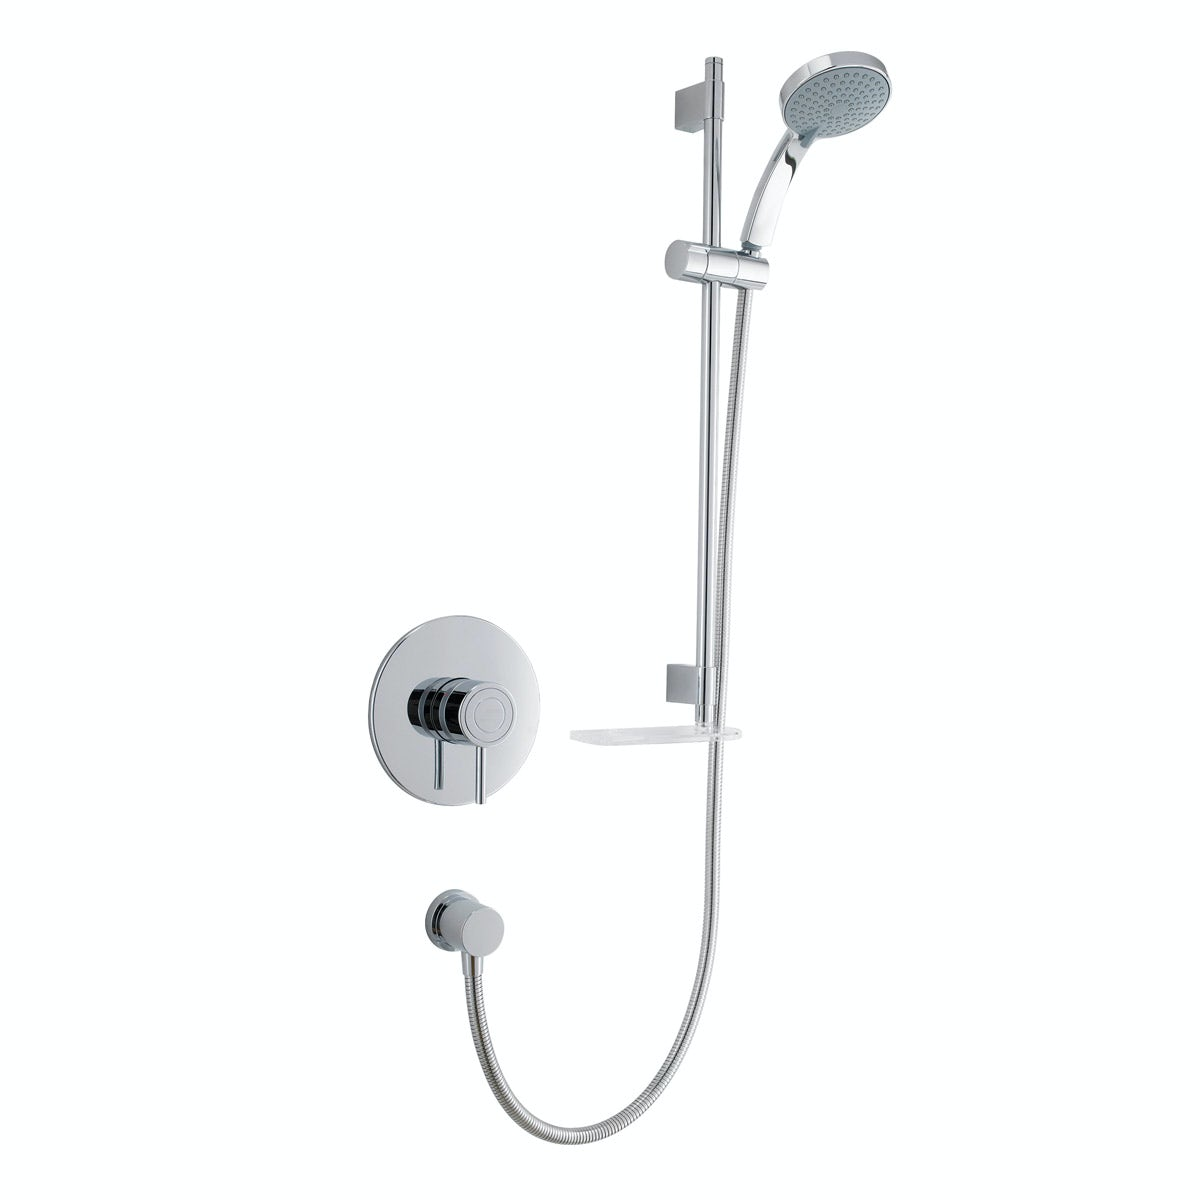 Mira Element SLT BIV thermostatic mixer shower